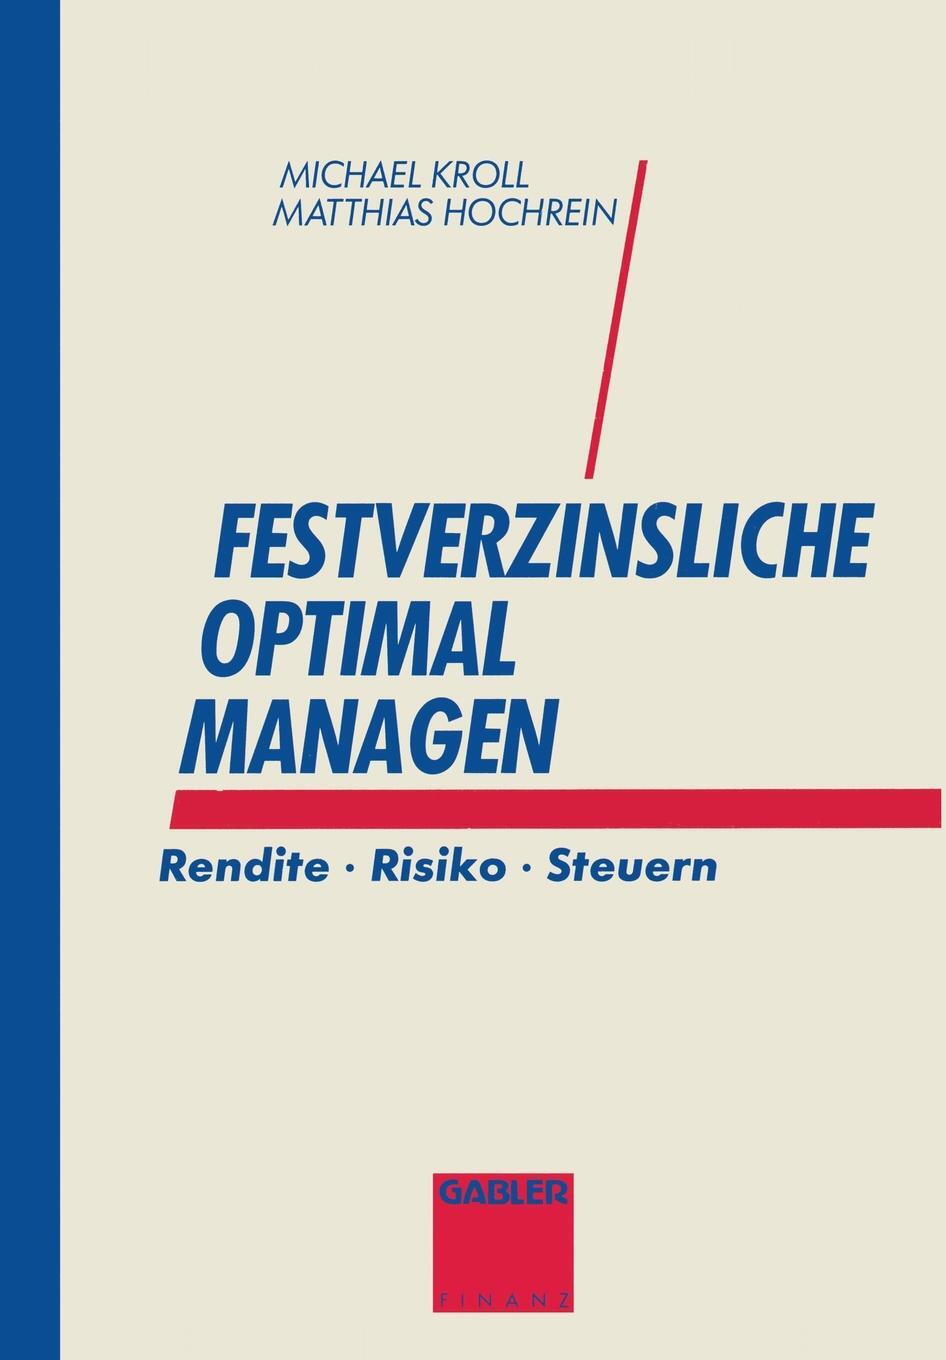 Festverzinsliche optimal  ...